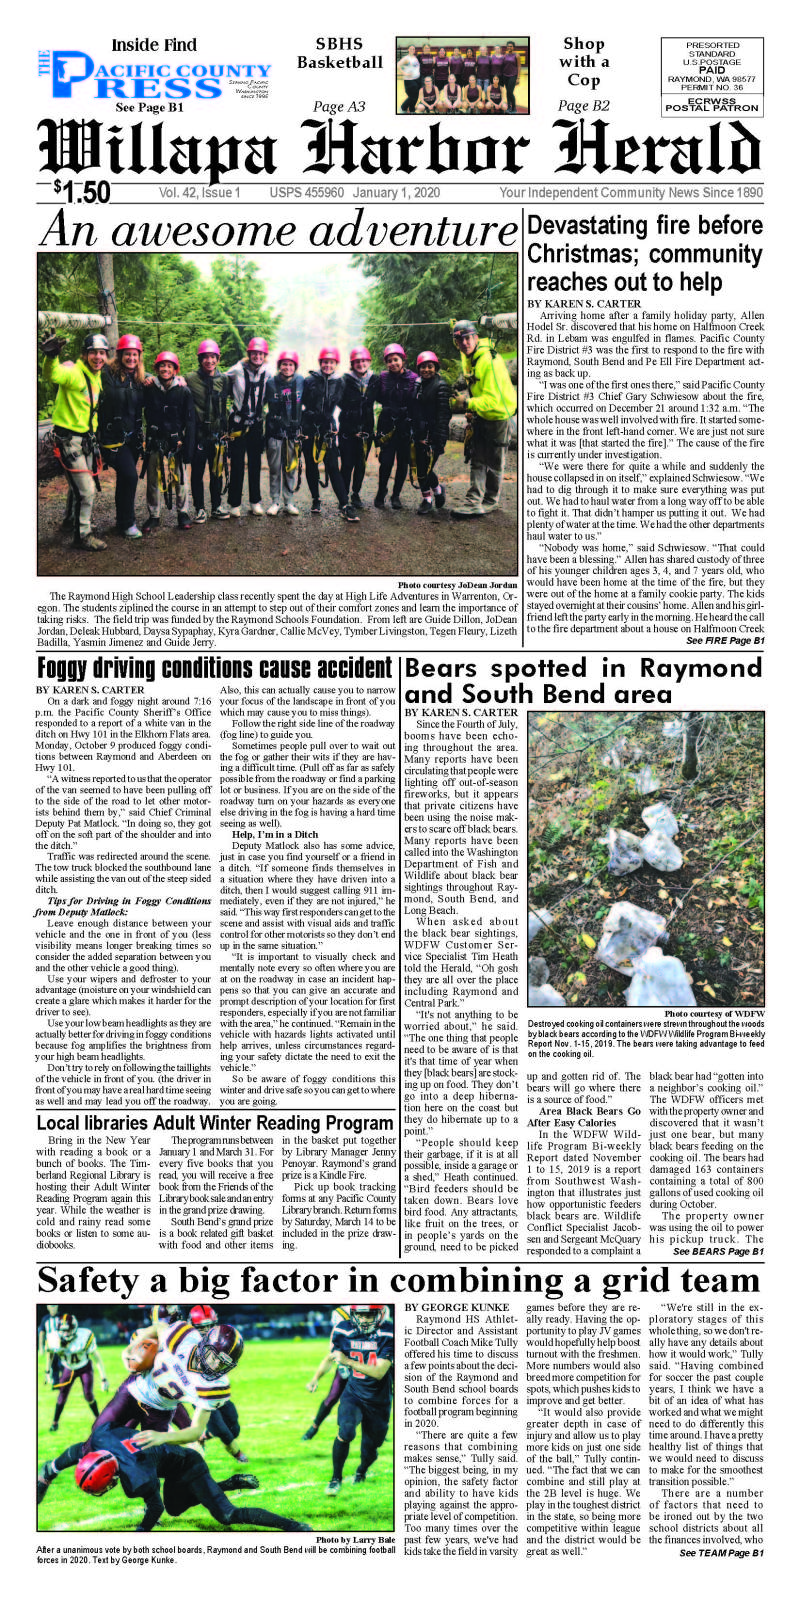 January 1, 2020 Willapa Harbor Herald and Pacific County Press